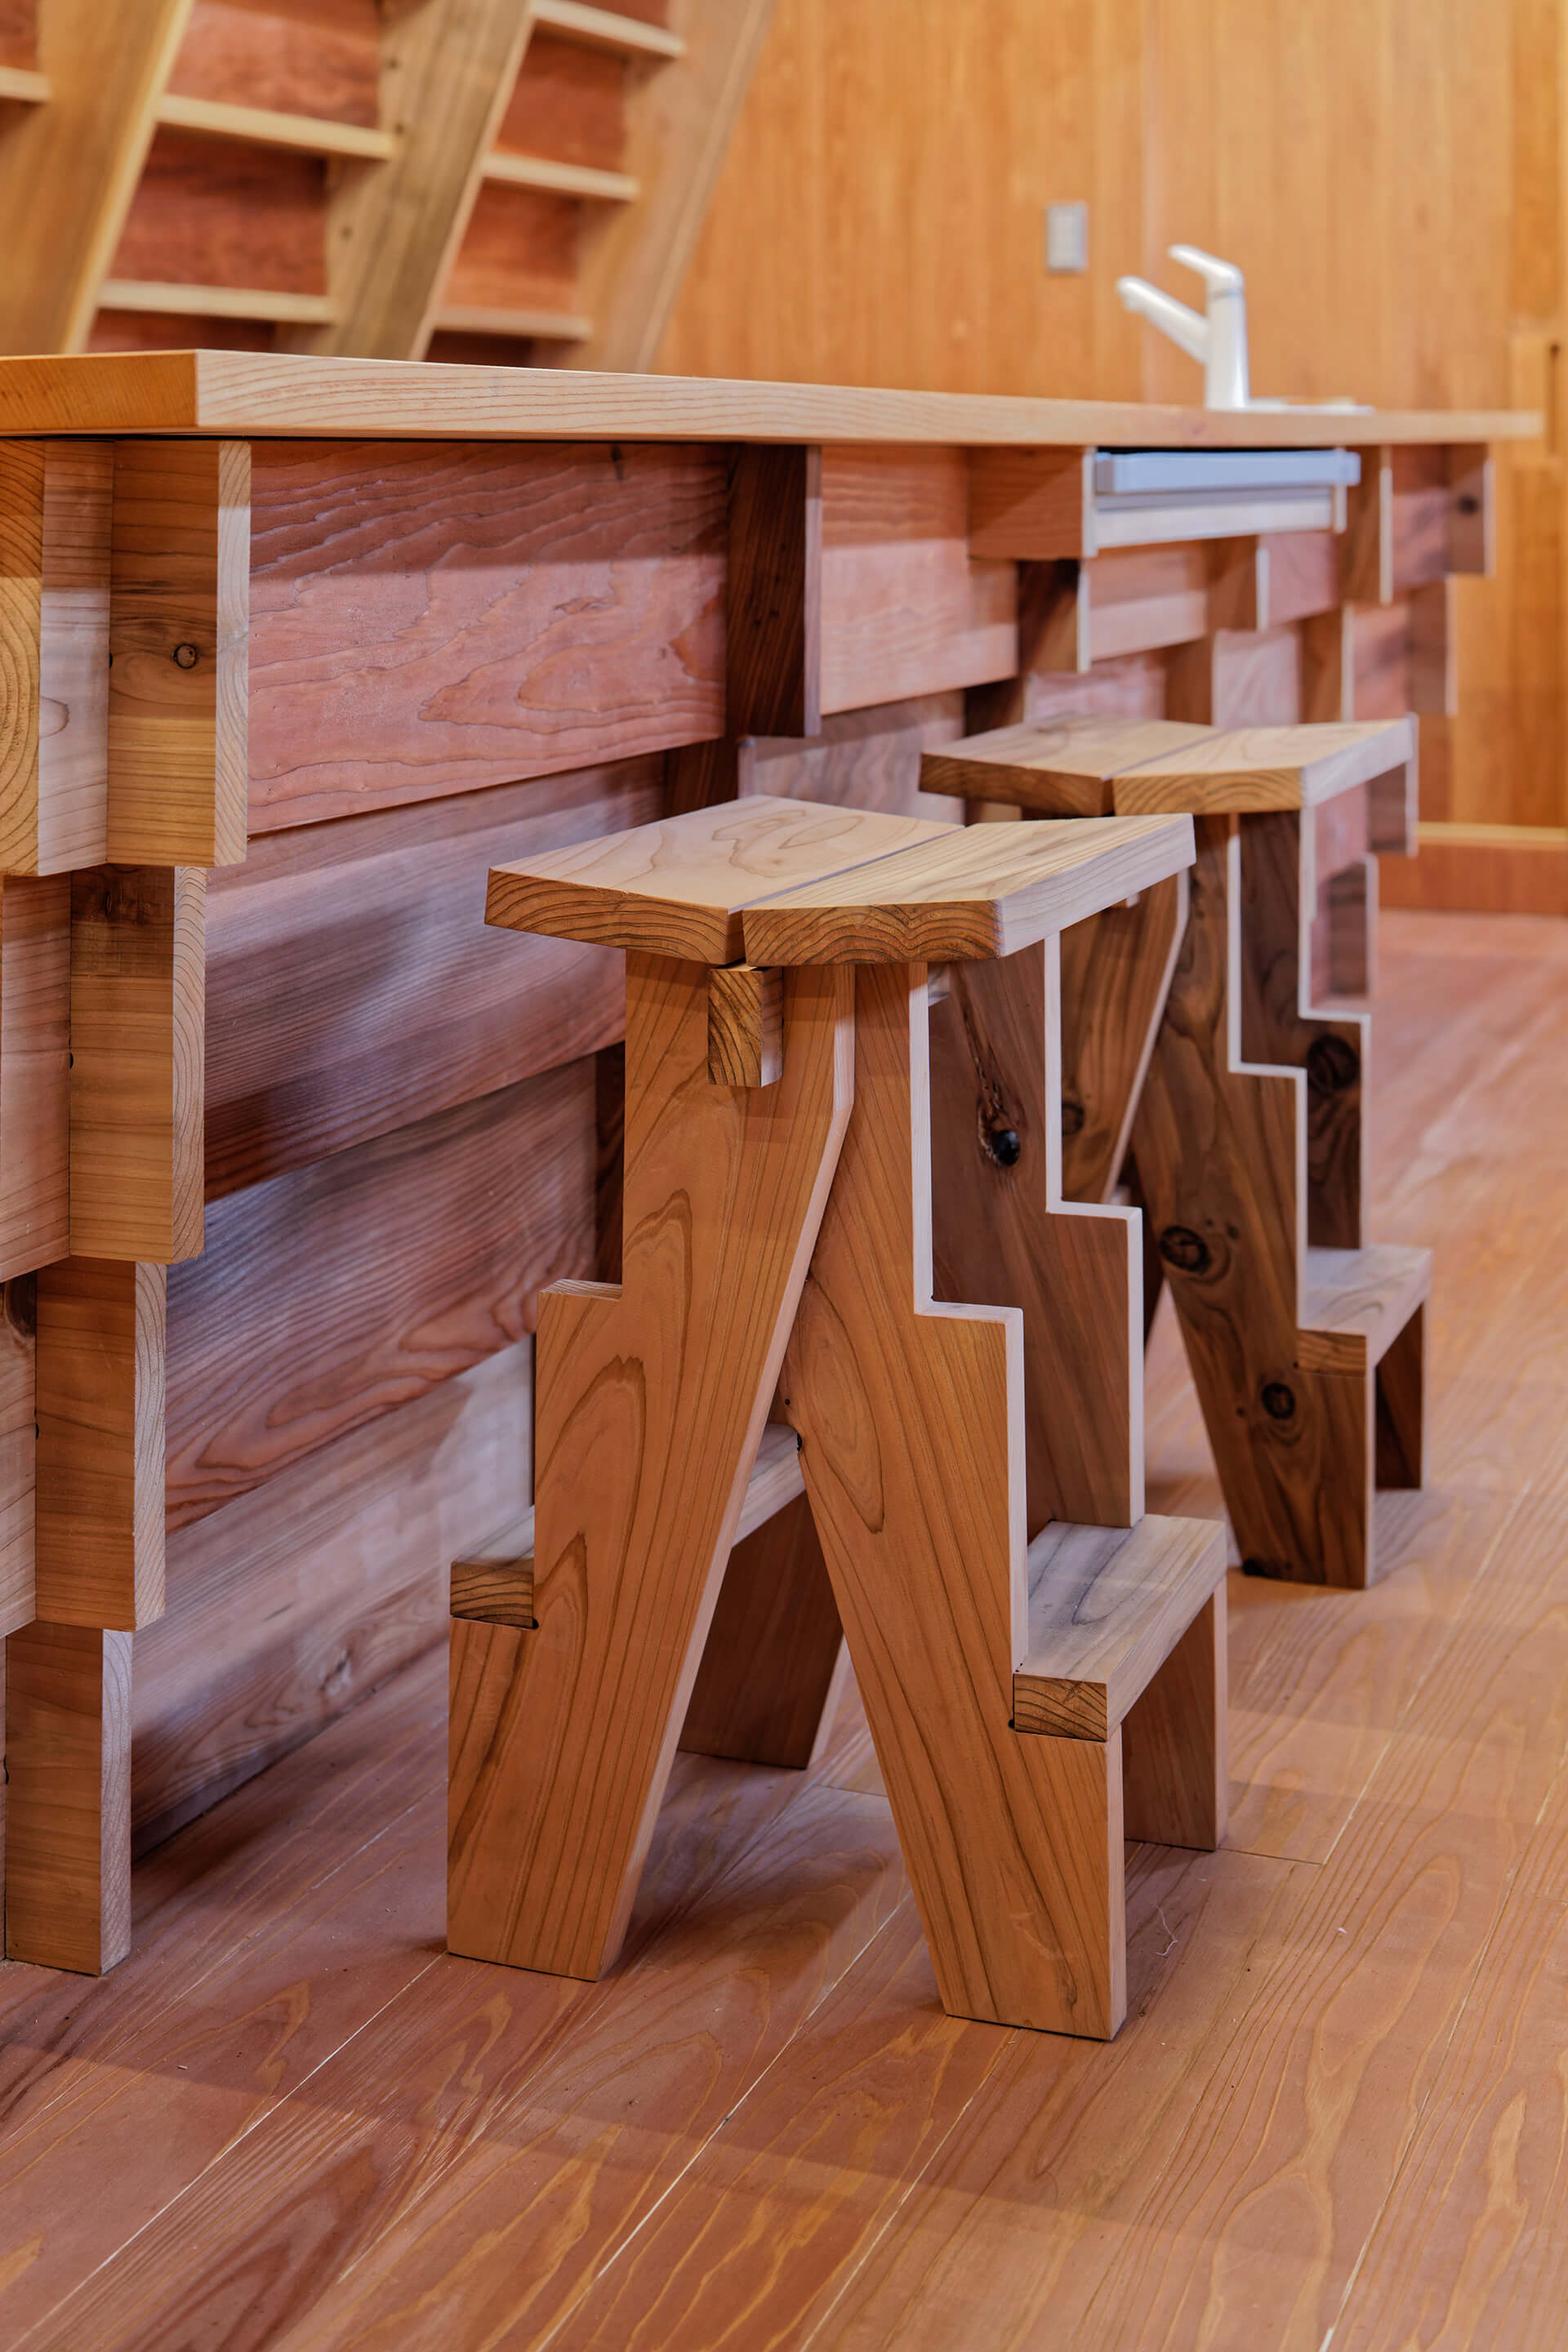 Wooden stools | House for Marebito designed by VUILD | STIRworld